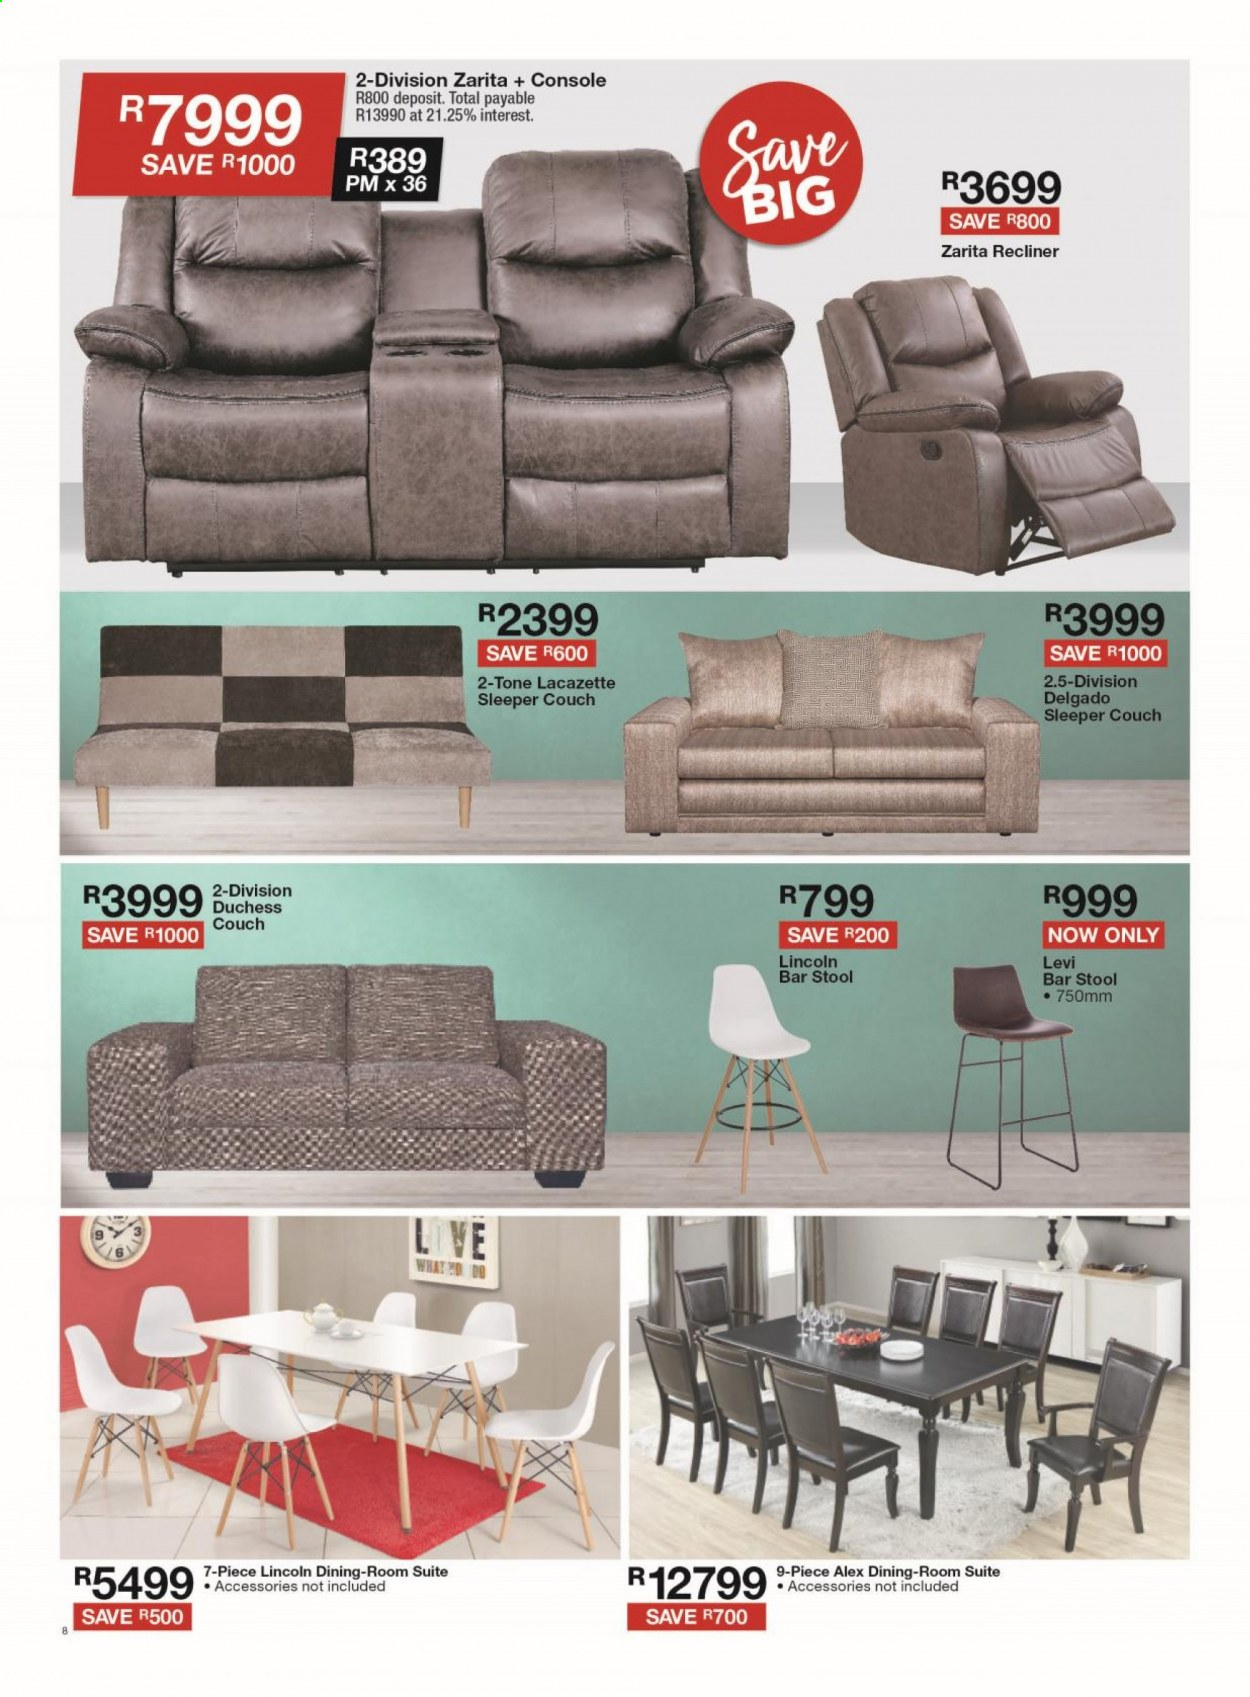 House & Home catalogue  - 04.06.2020 - 04.19.2020. Page 8.